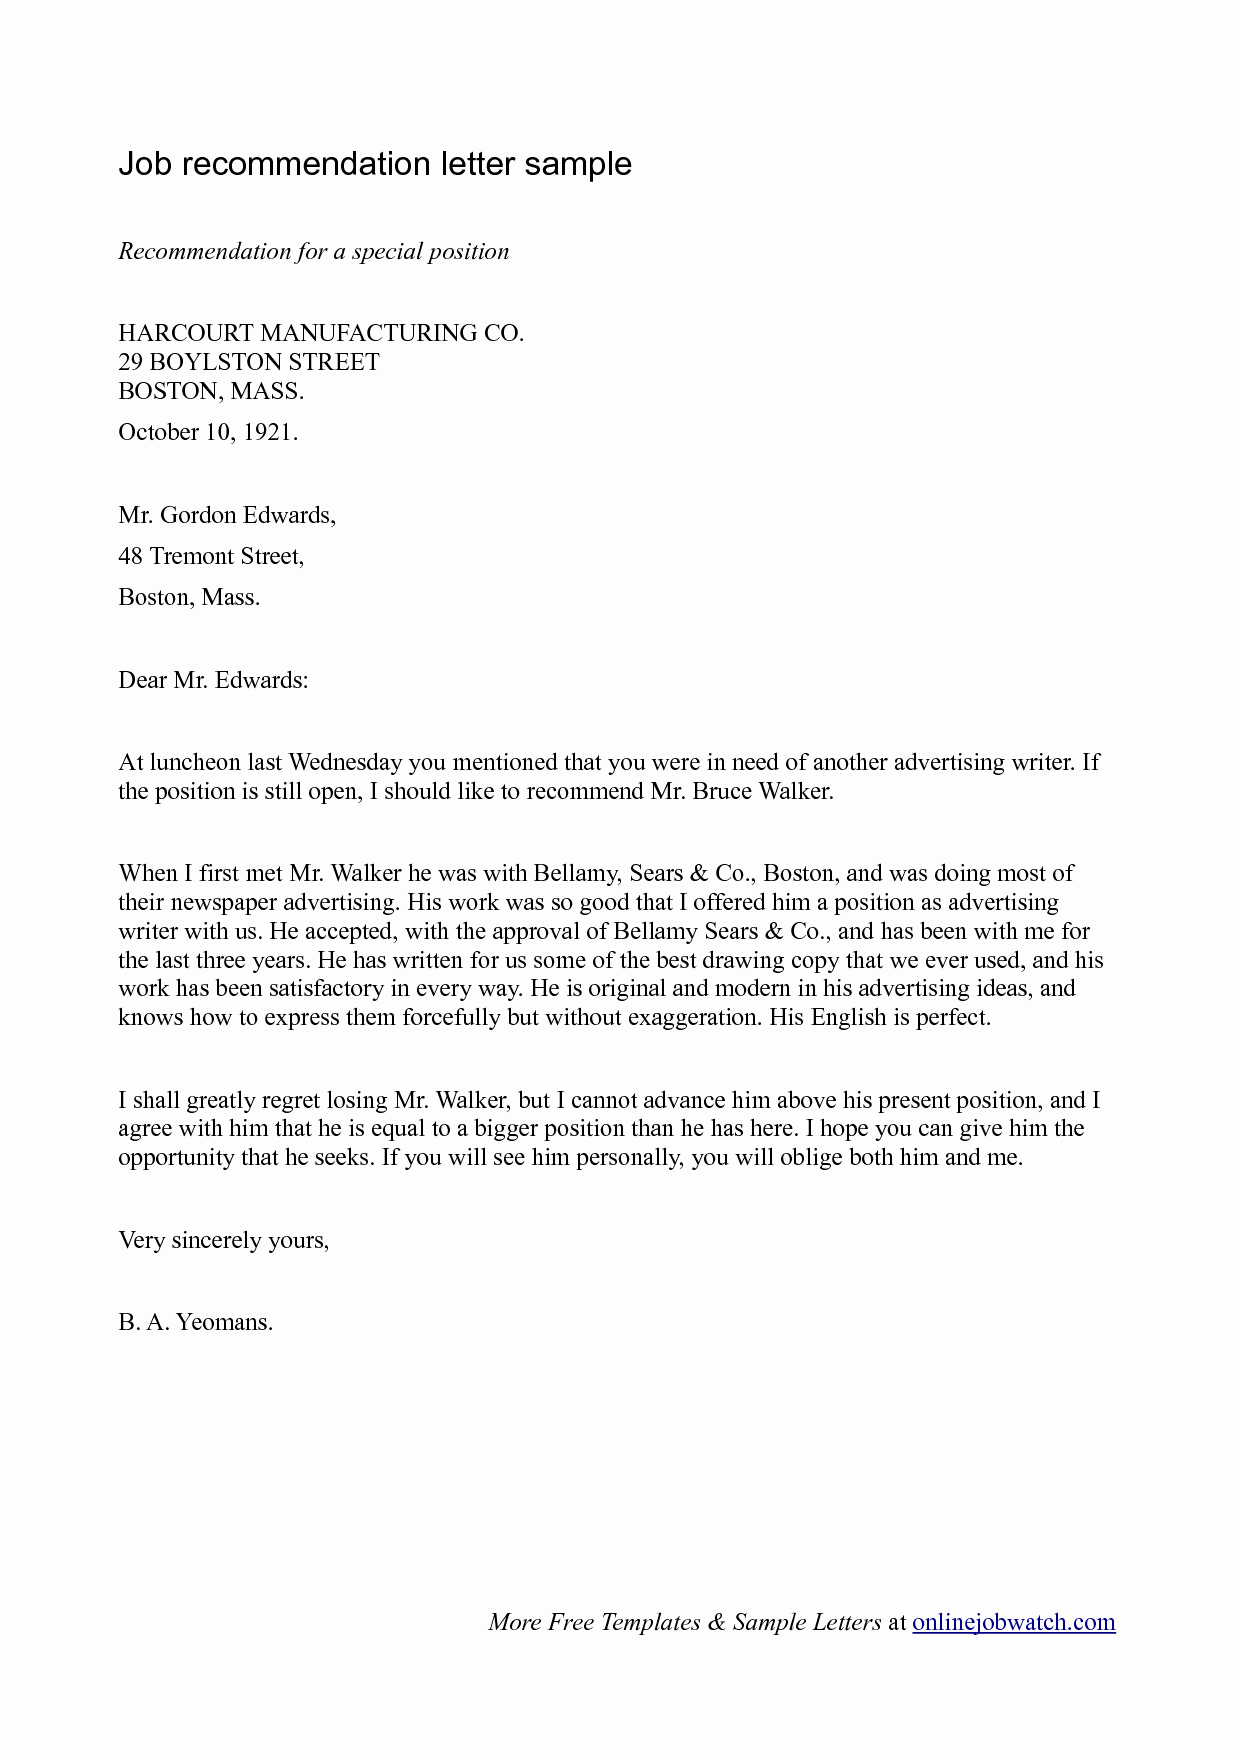 Reference Letter for Employment Samples Beautiful Simple Guide Professional Reference Letter with Samples